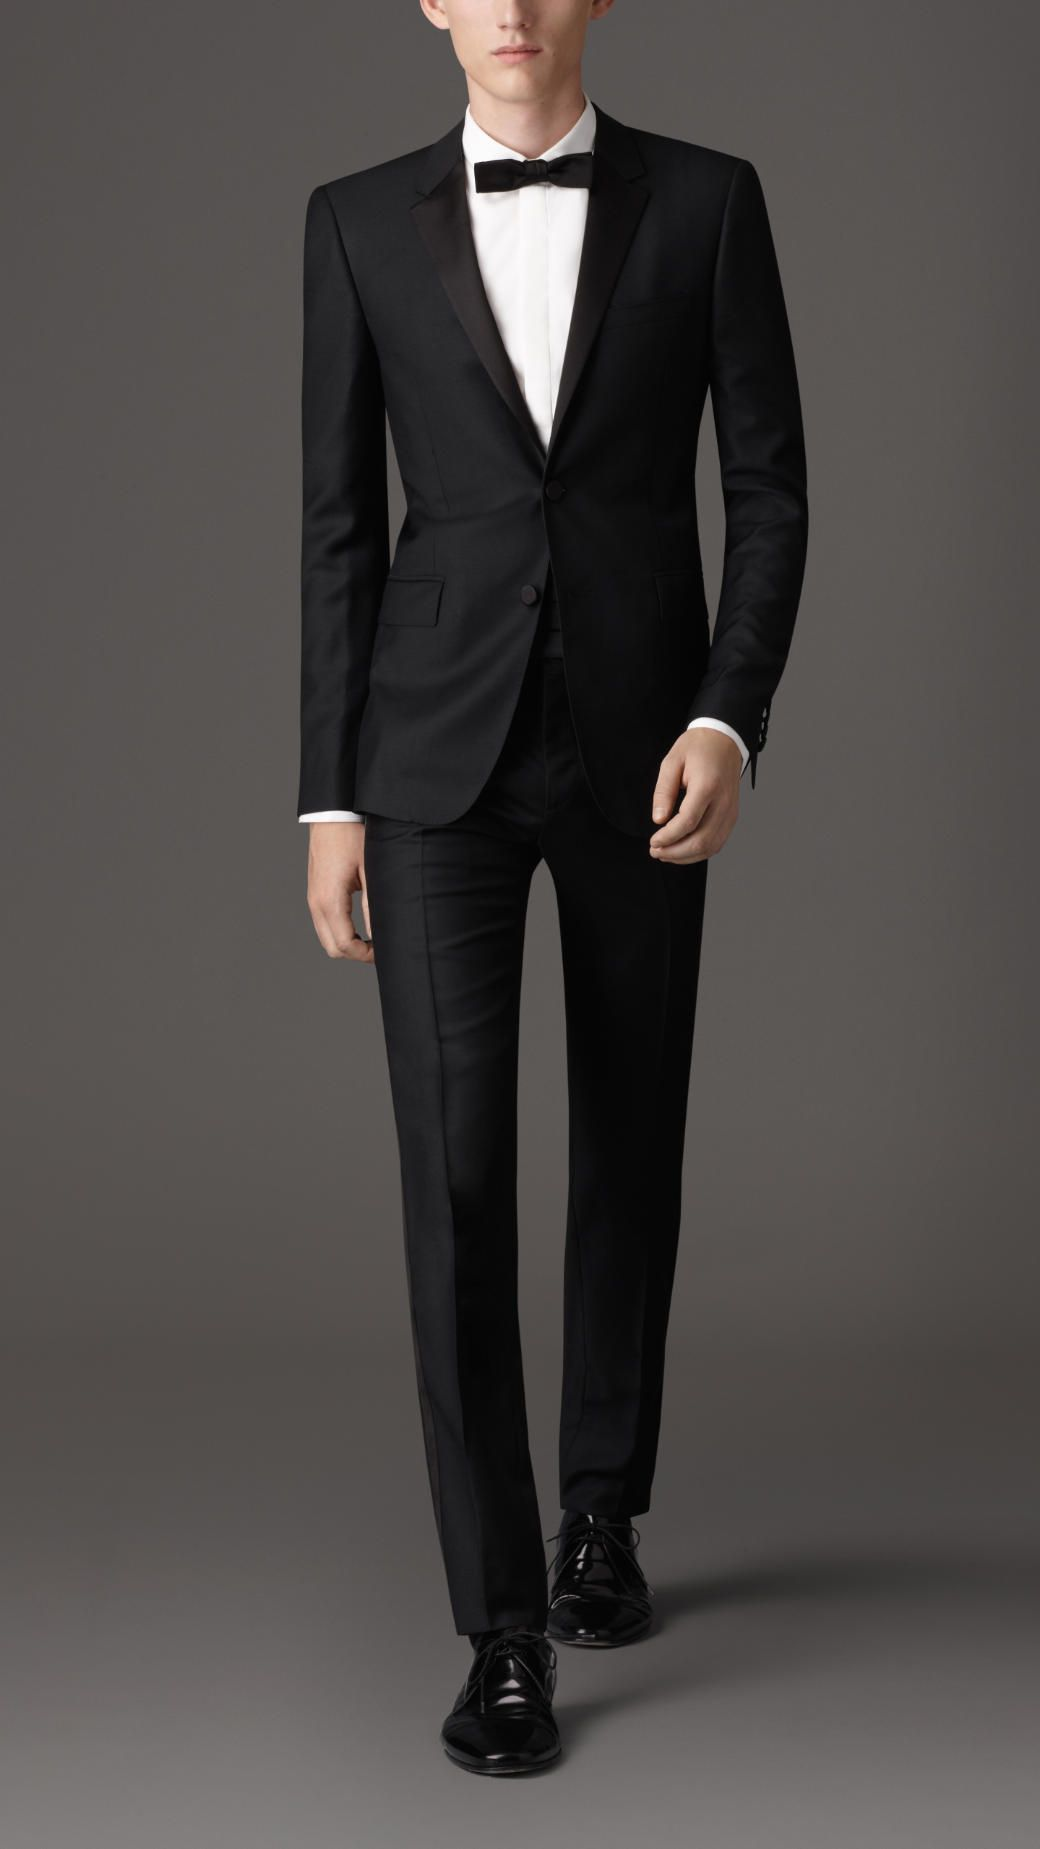 1000  images about Suits on Pinterest | Black two piece, Tuxedos